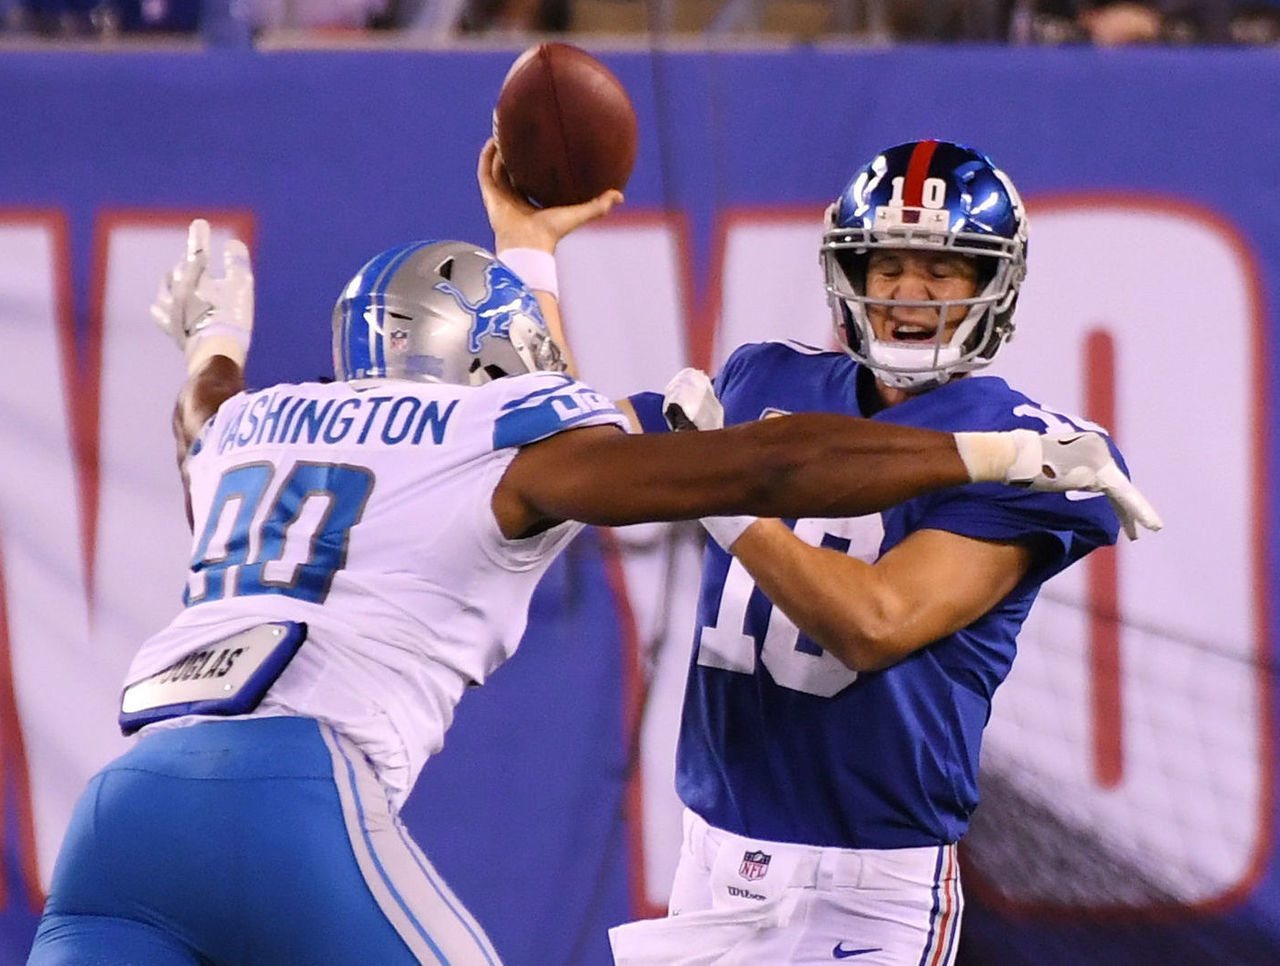 Cropped 2017 09 19t034502z 764802524 nocid rtrmadp 3 nfl detroit lions at new york giants